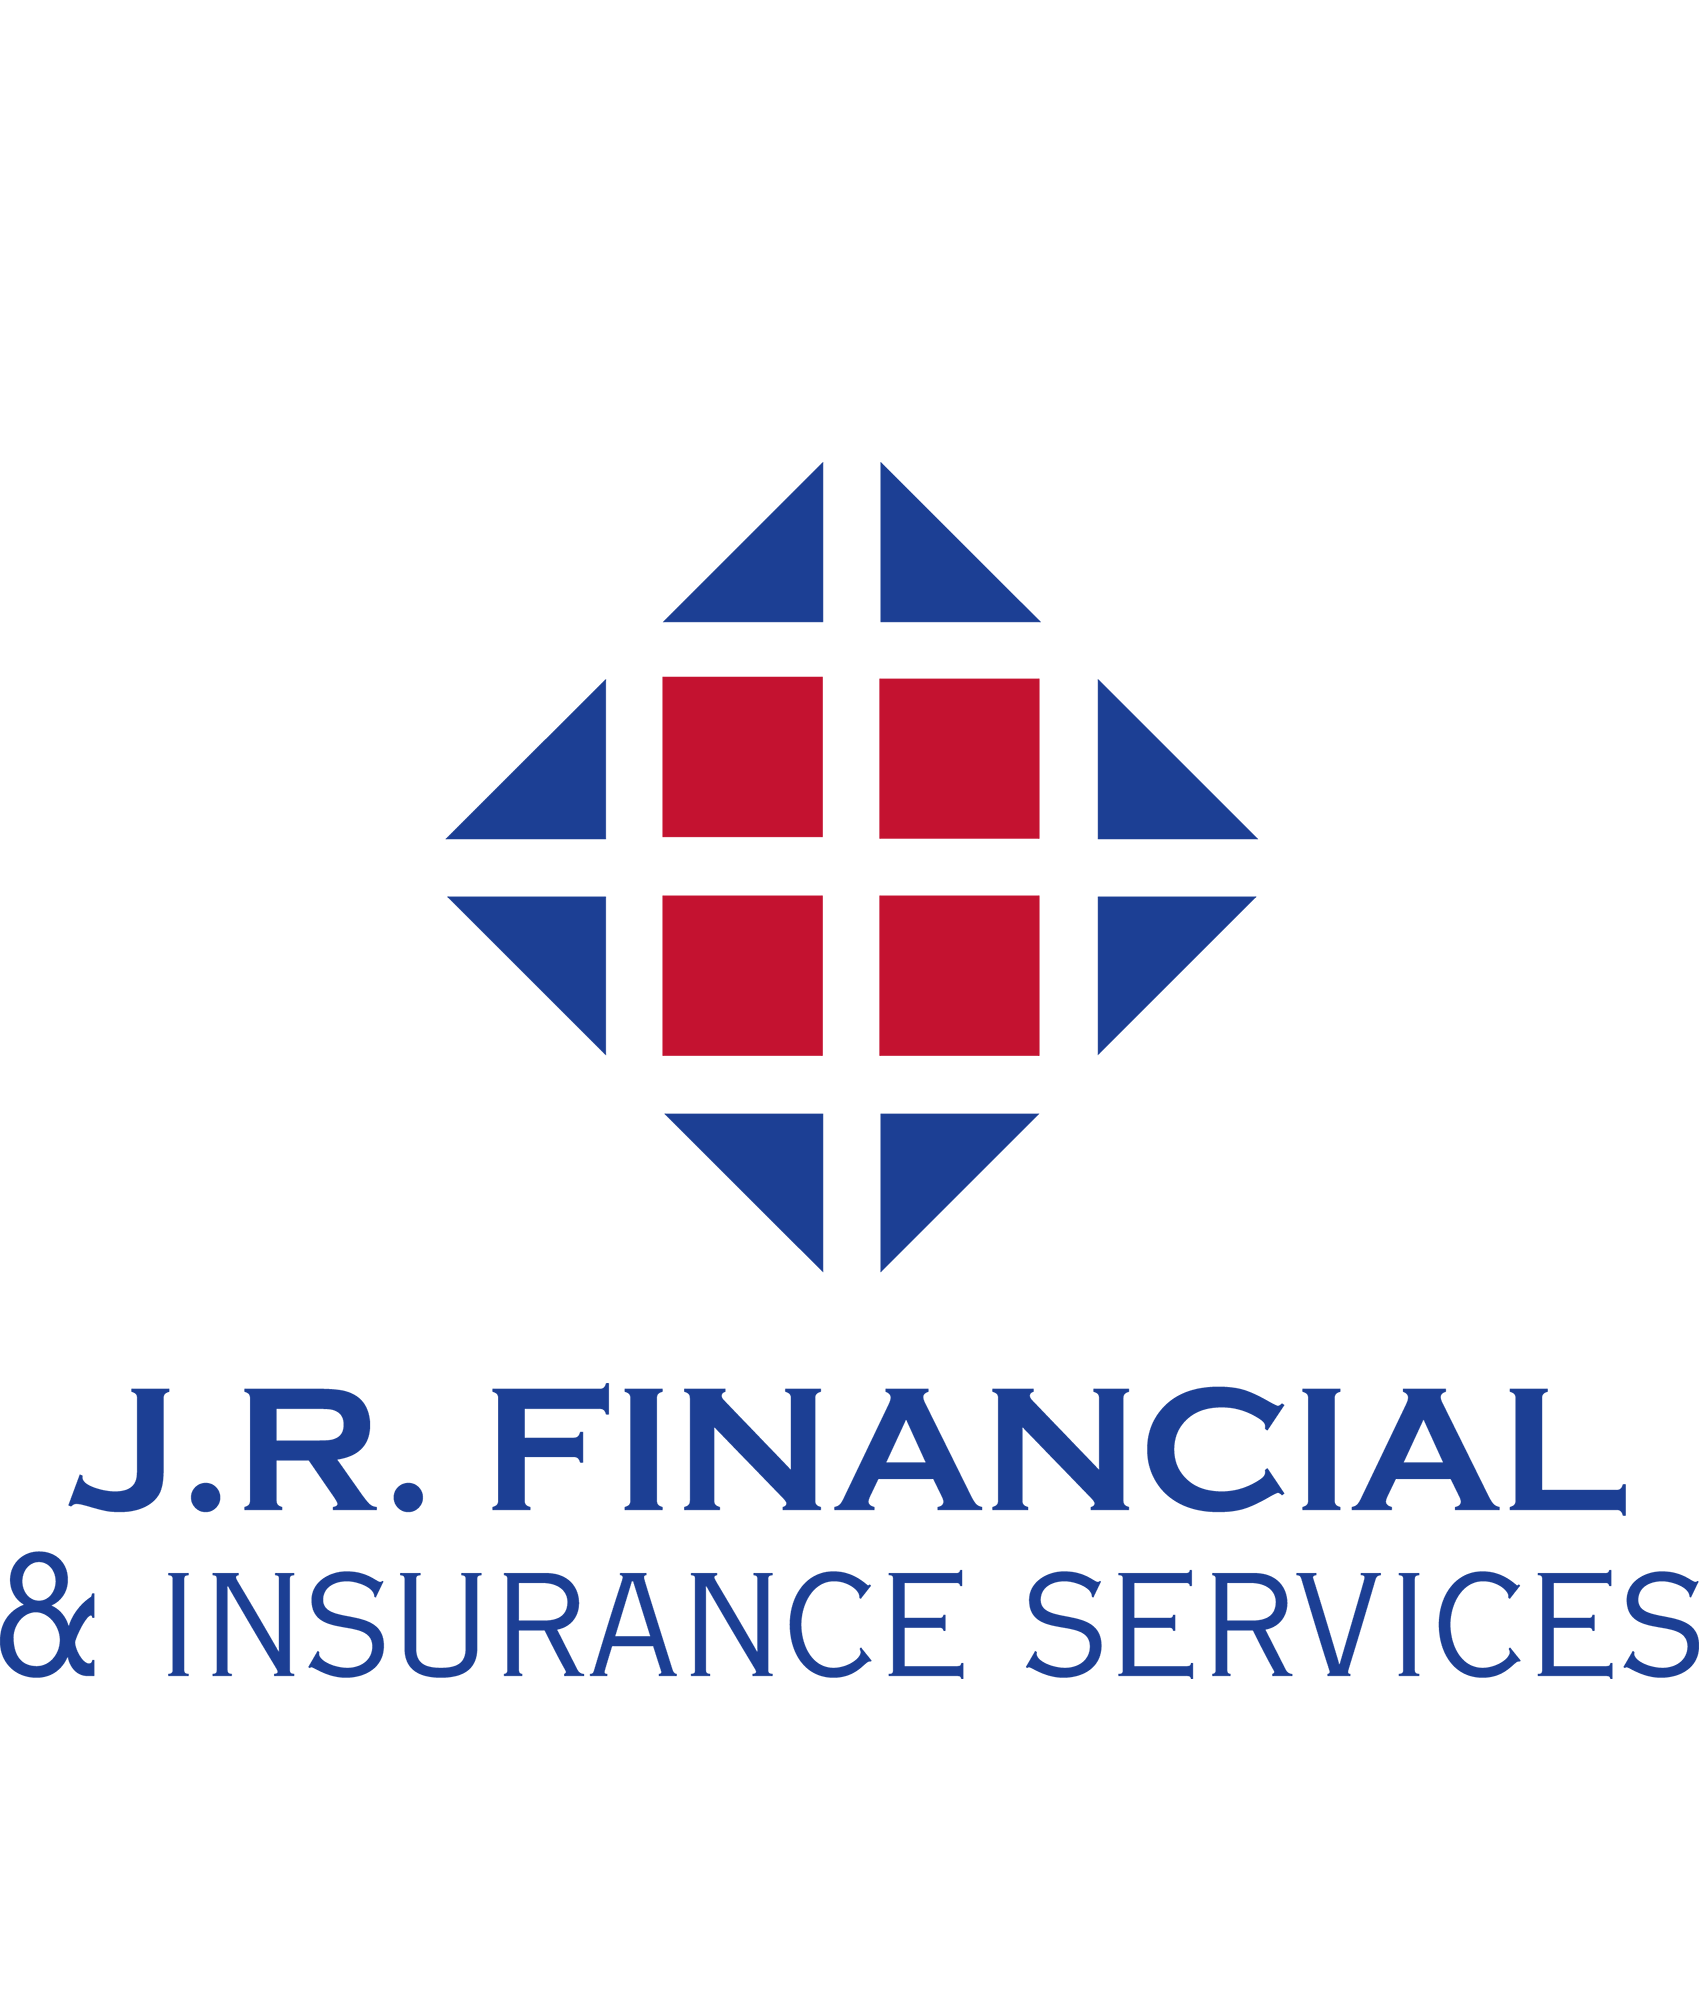 JR Financial & Insurance Services